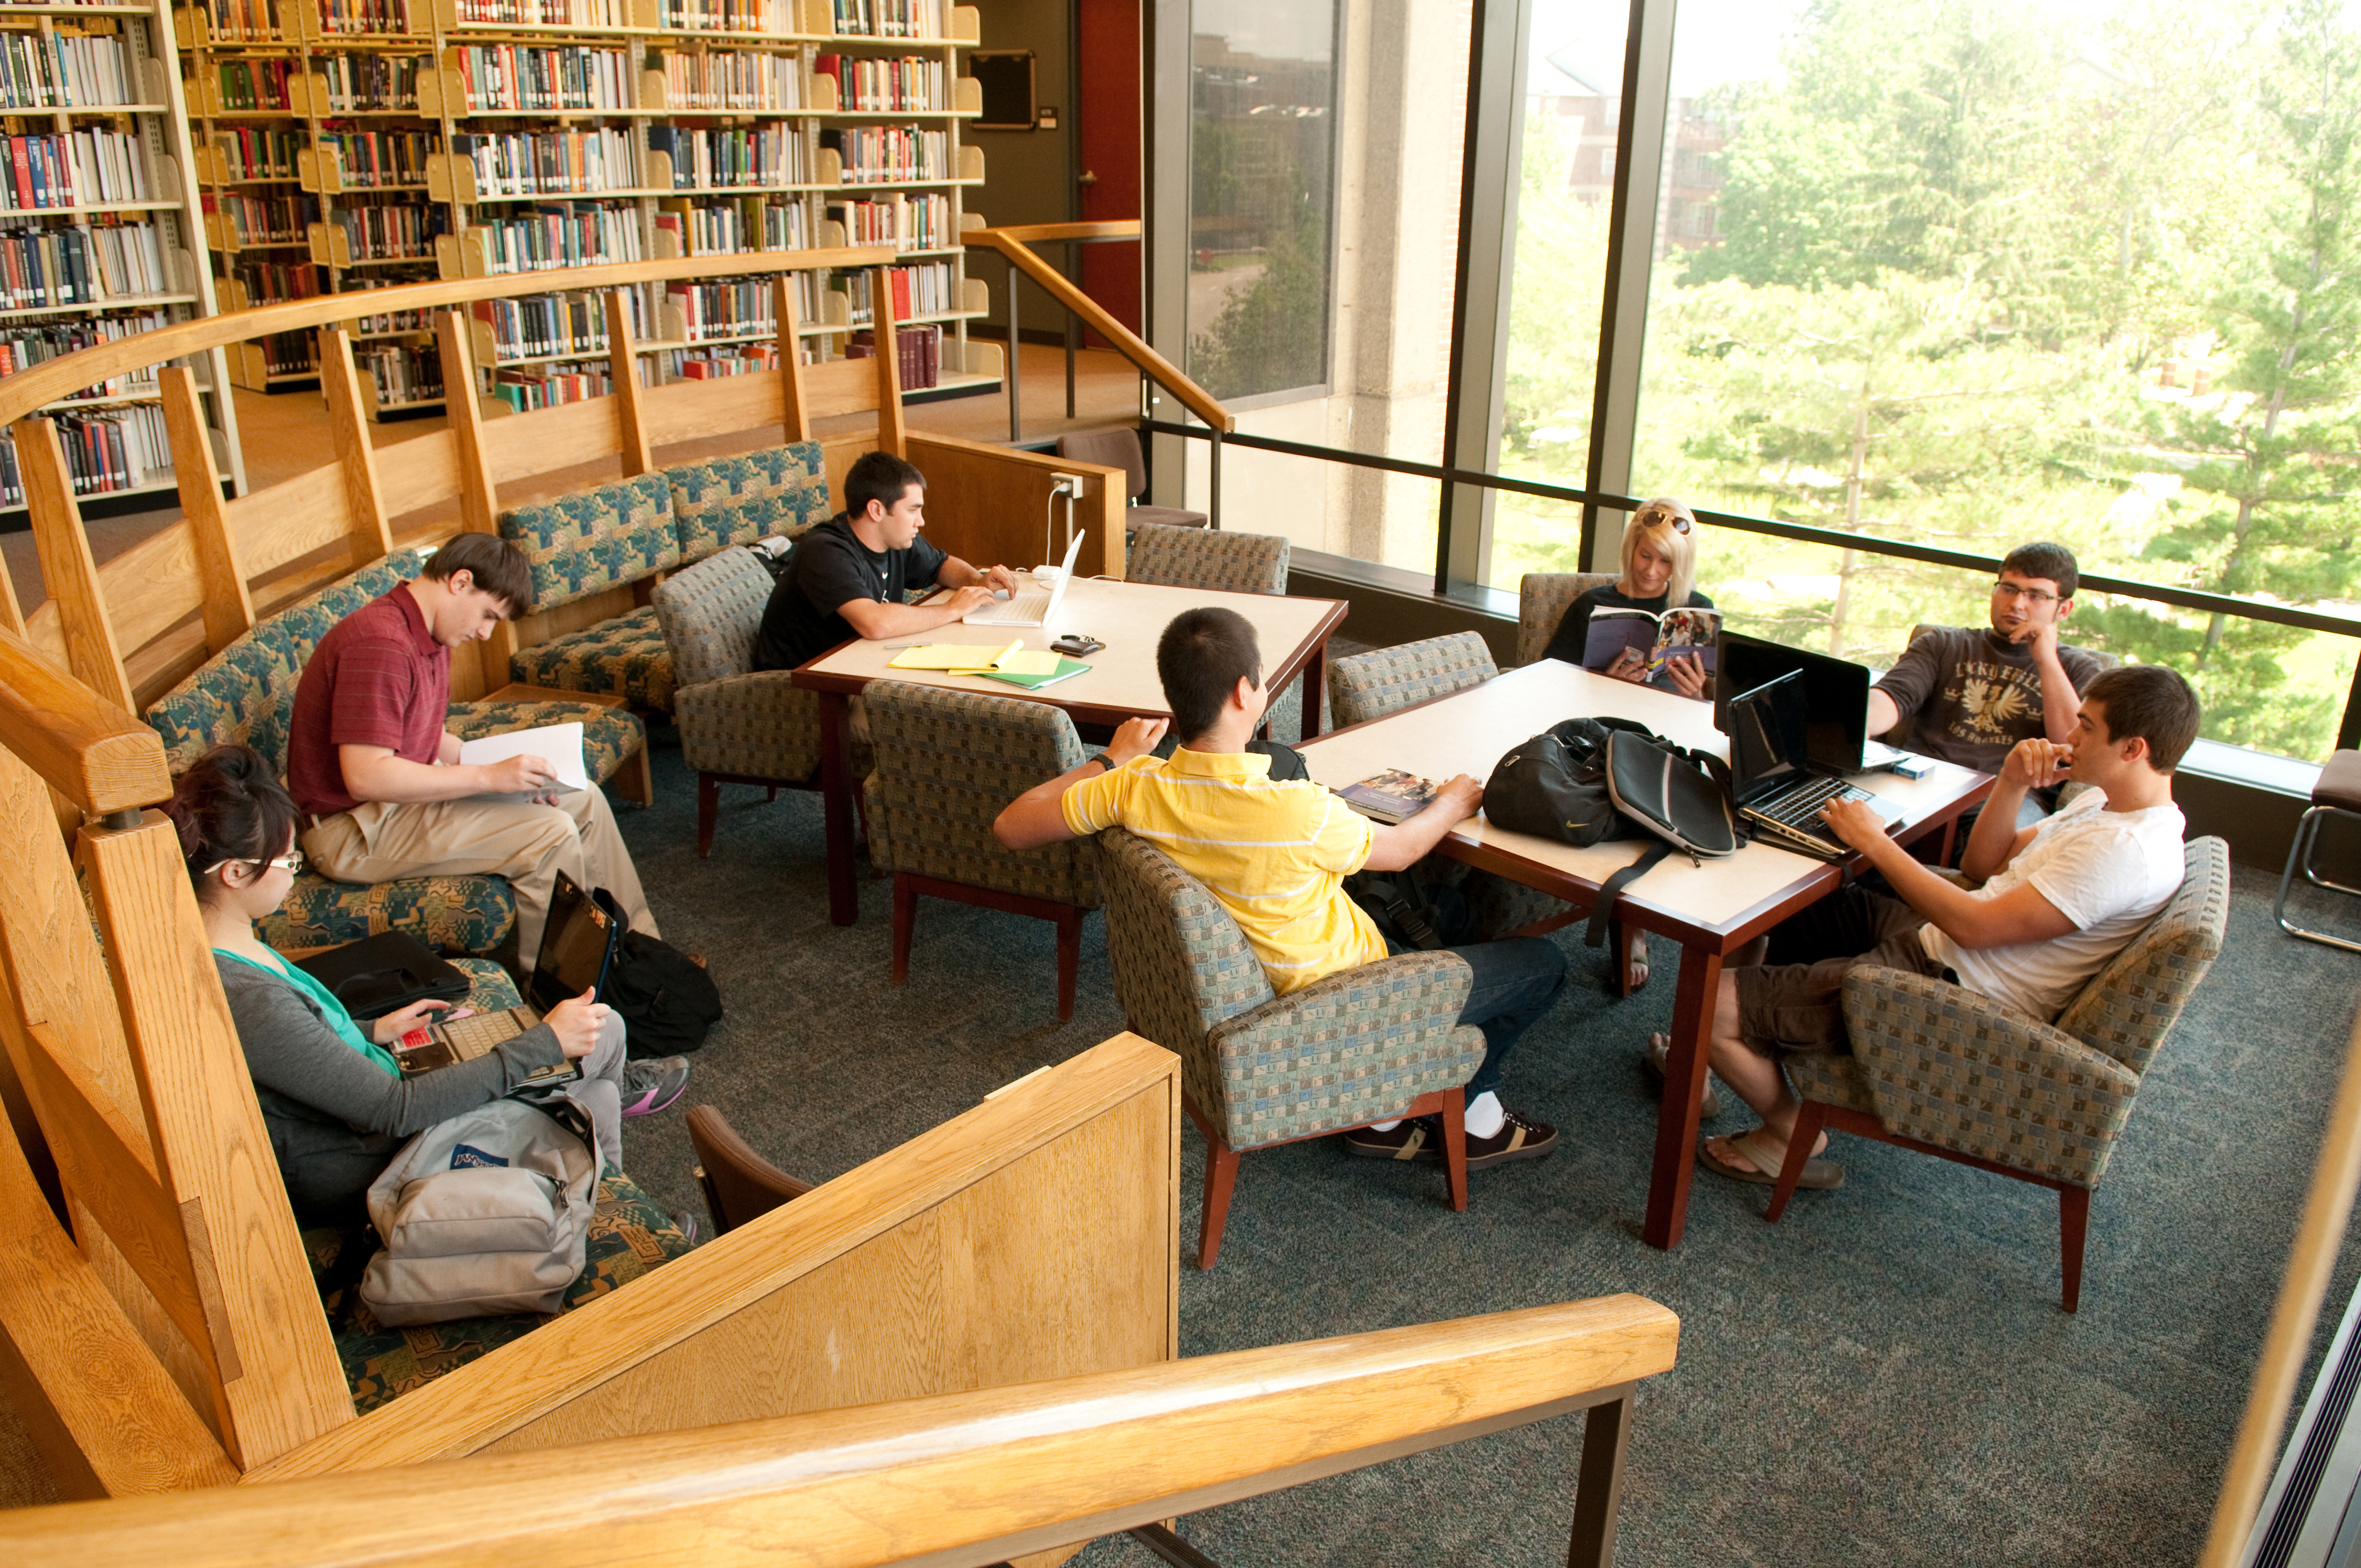 ISU students studying in Millner Library